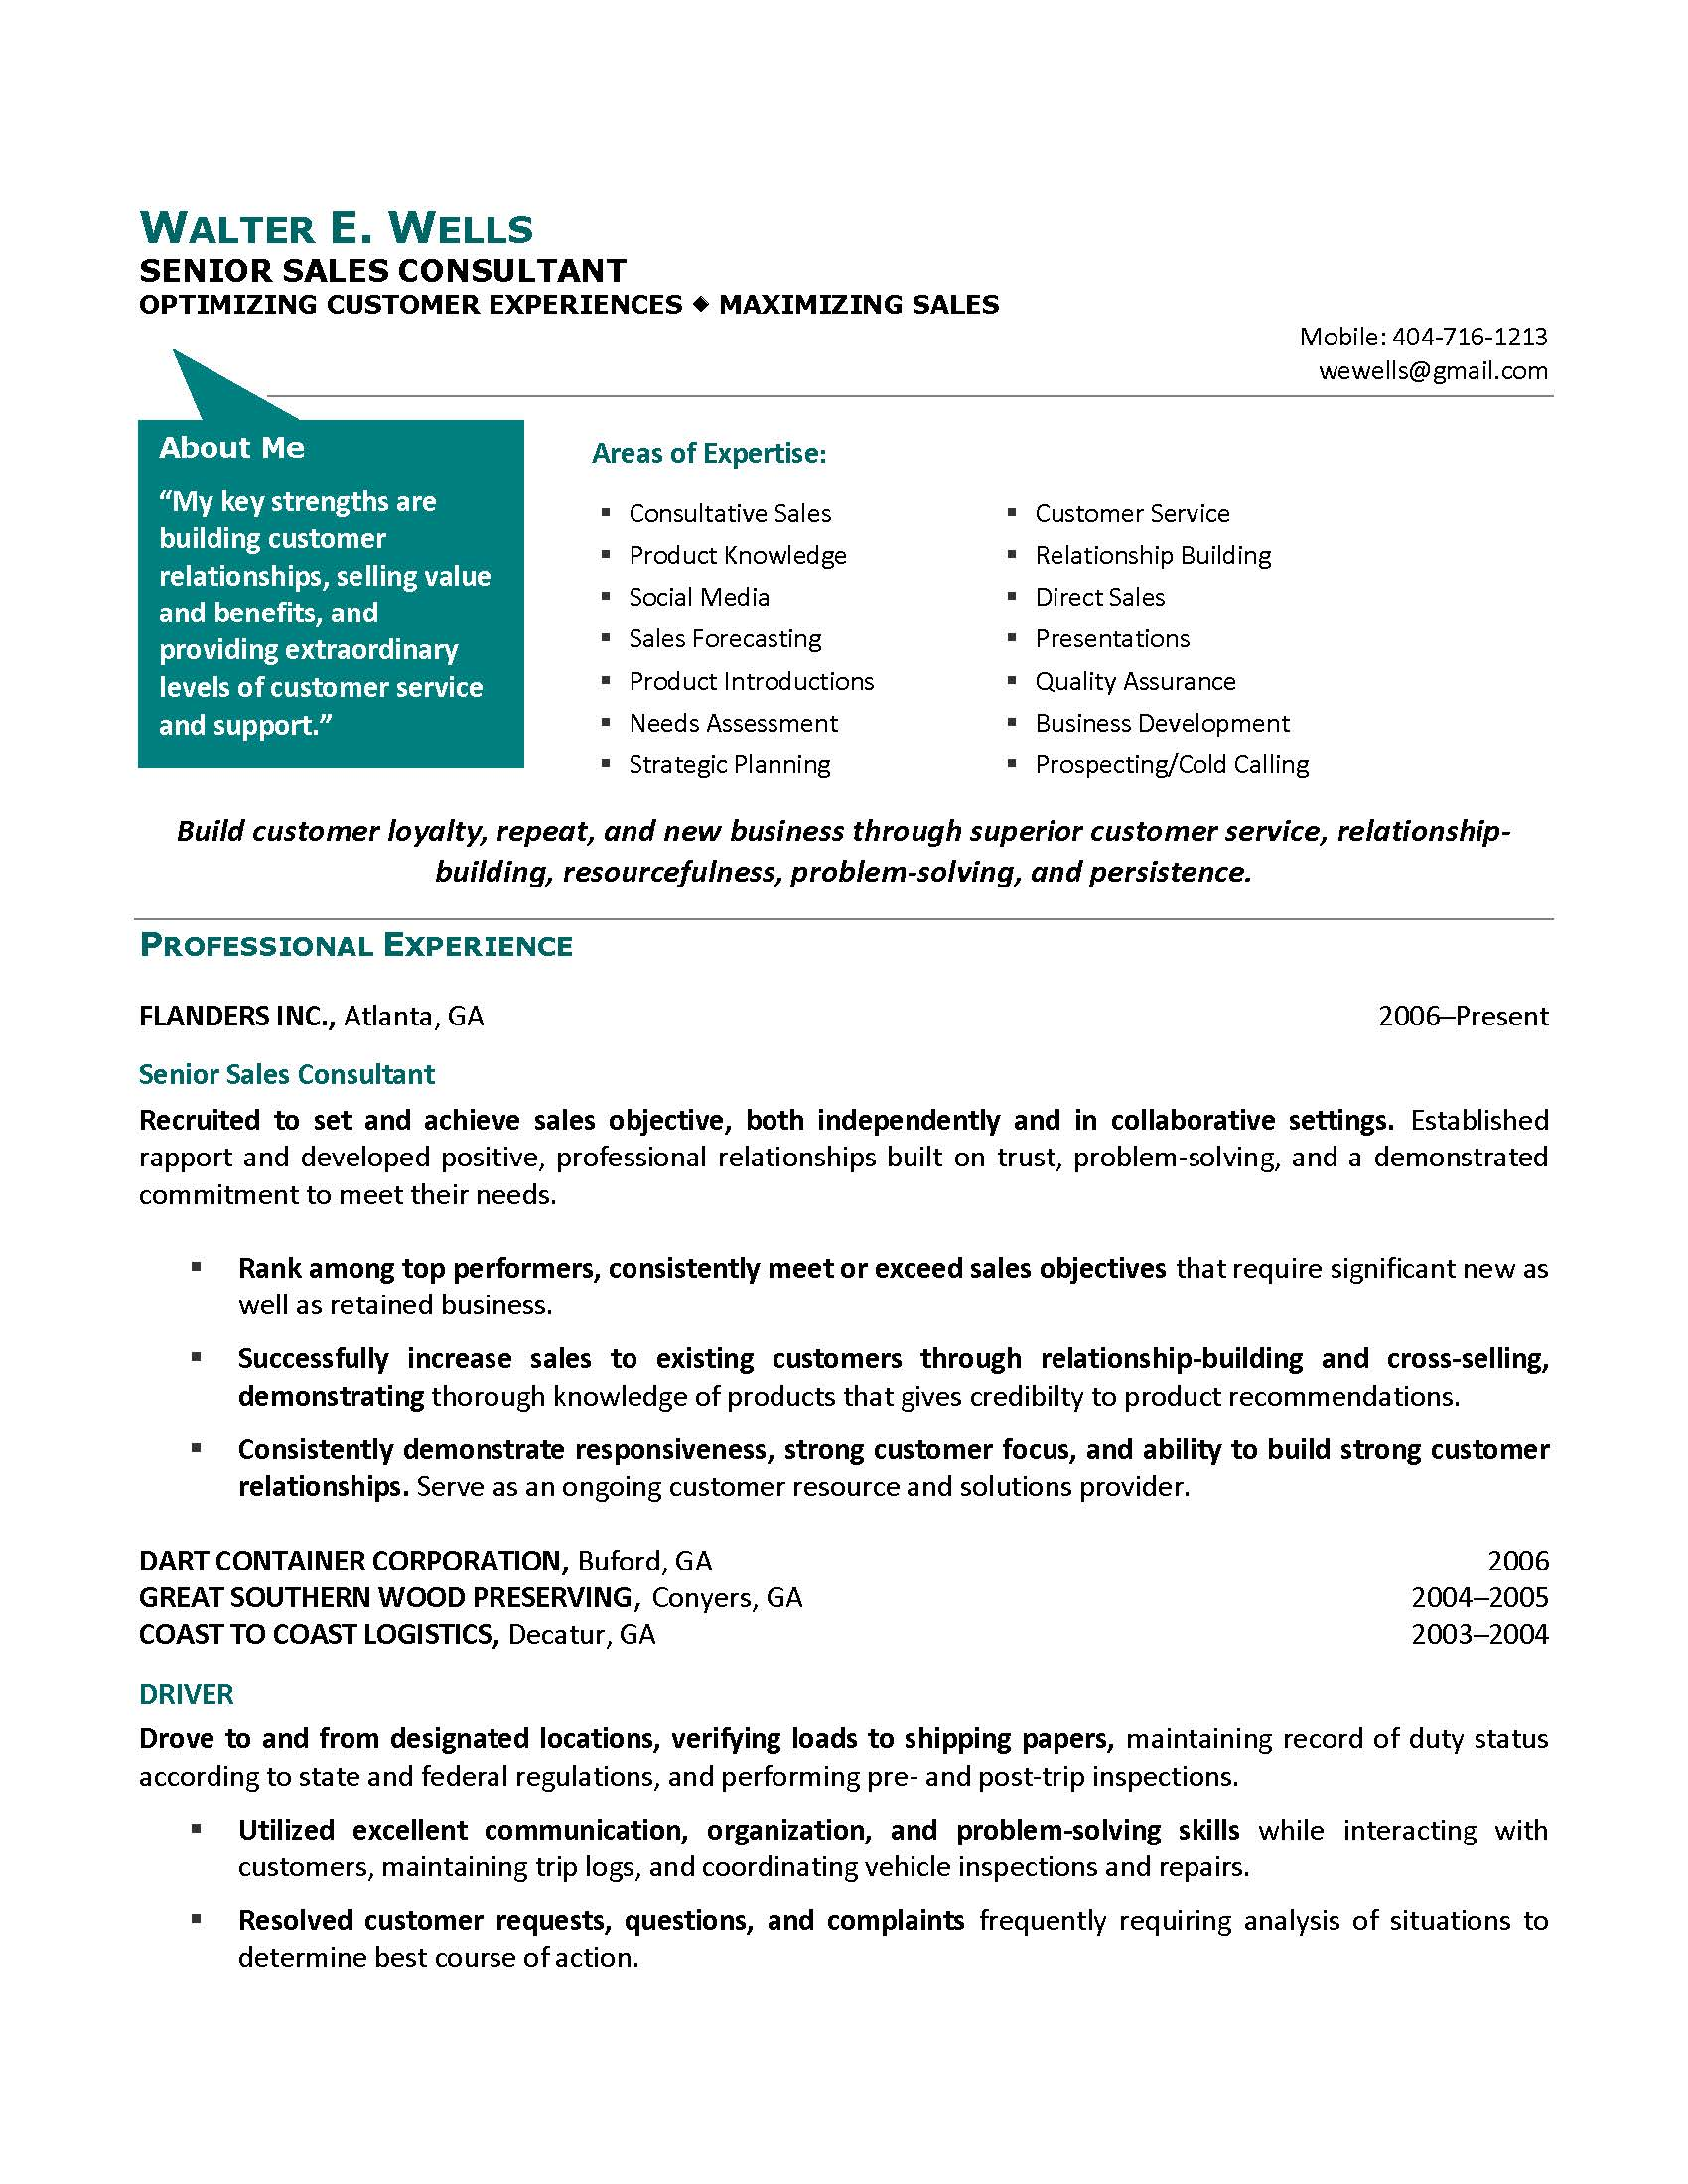 consultant resume samples strategy consulting resume samples - Business Consultant Resume Sample